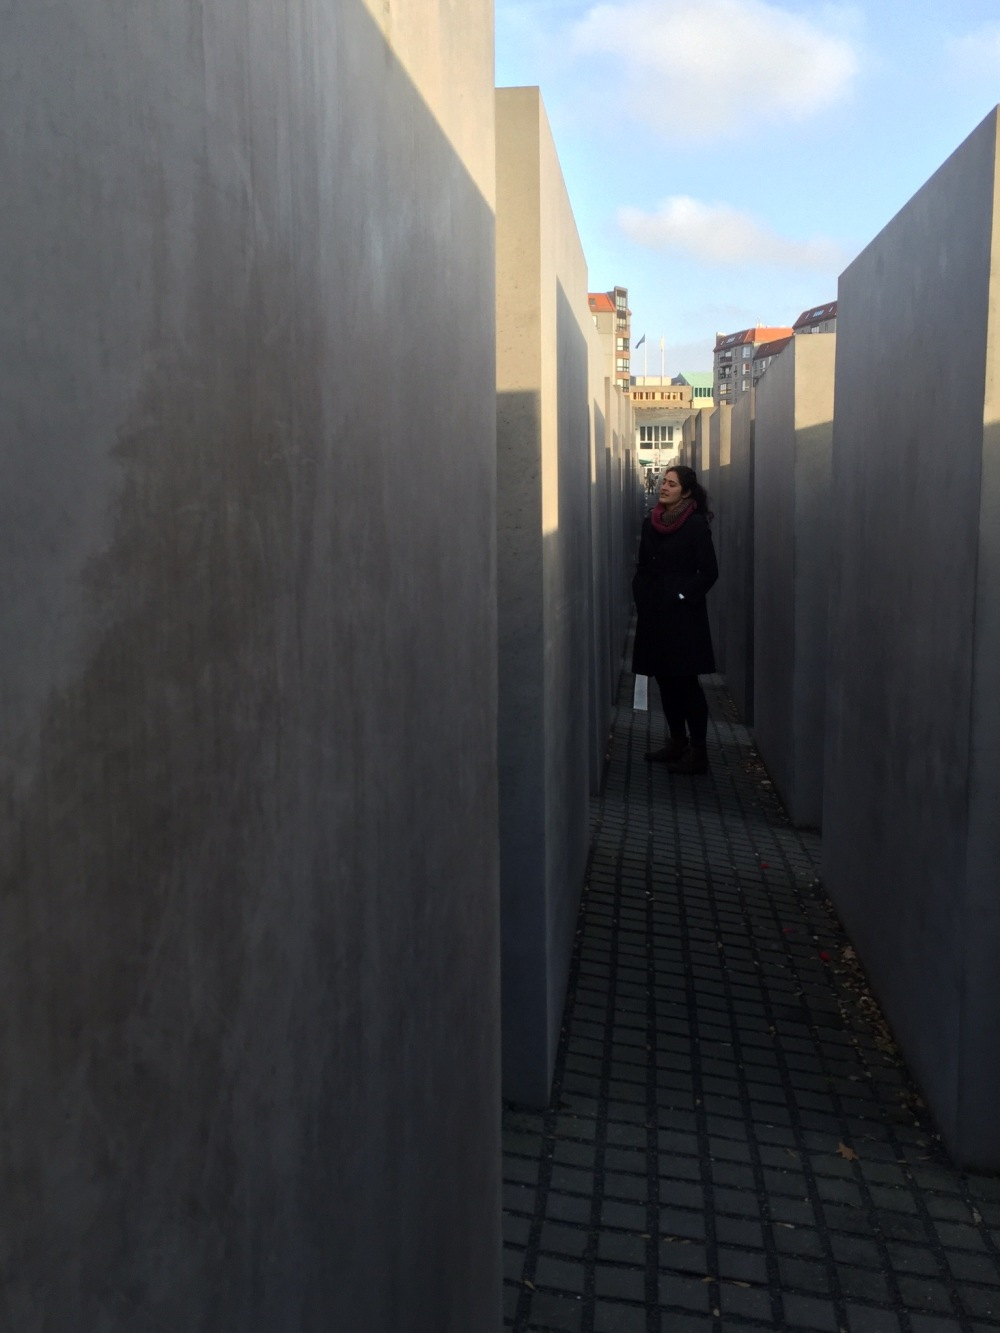 Wandering around the holocaust memorial